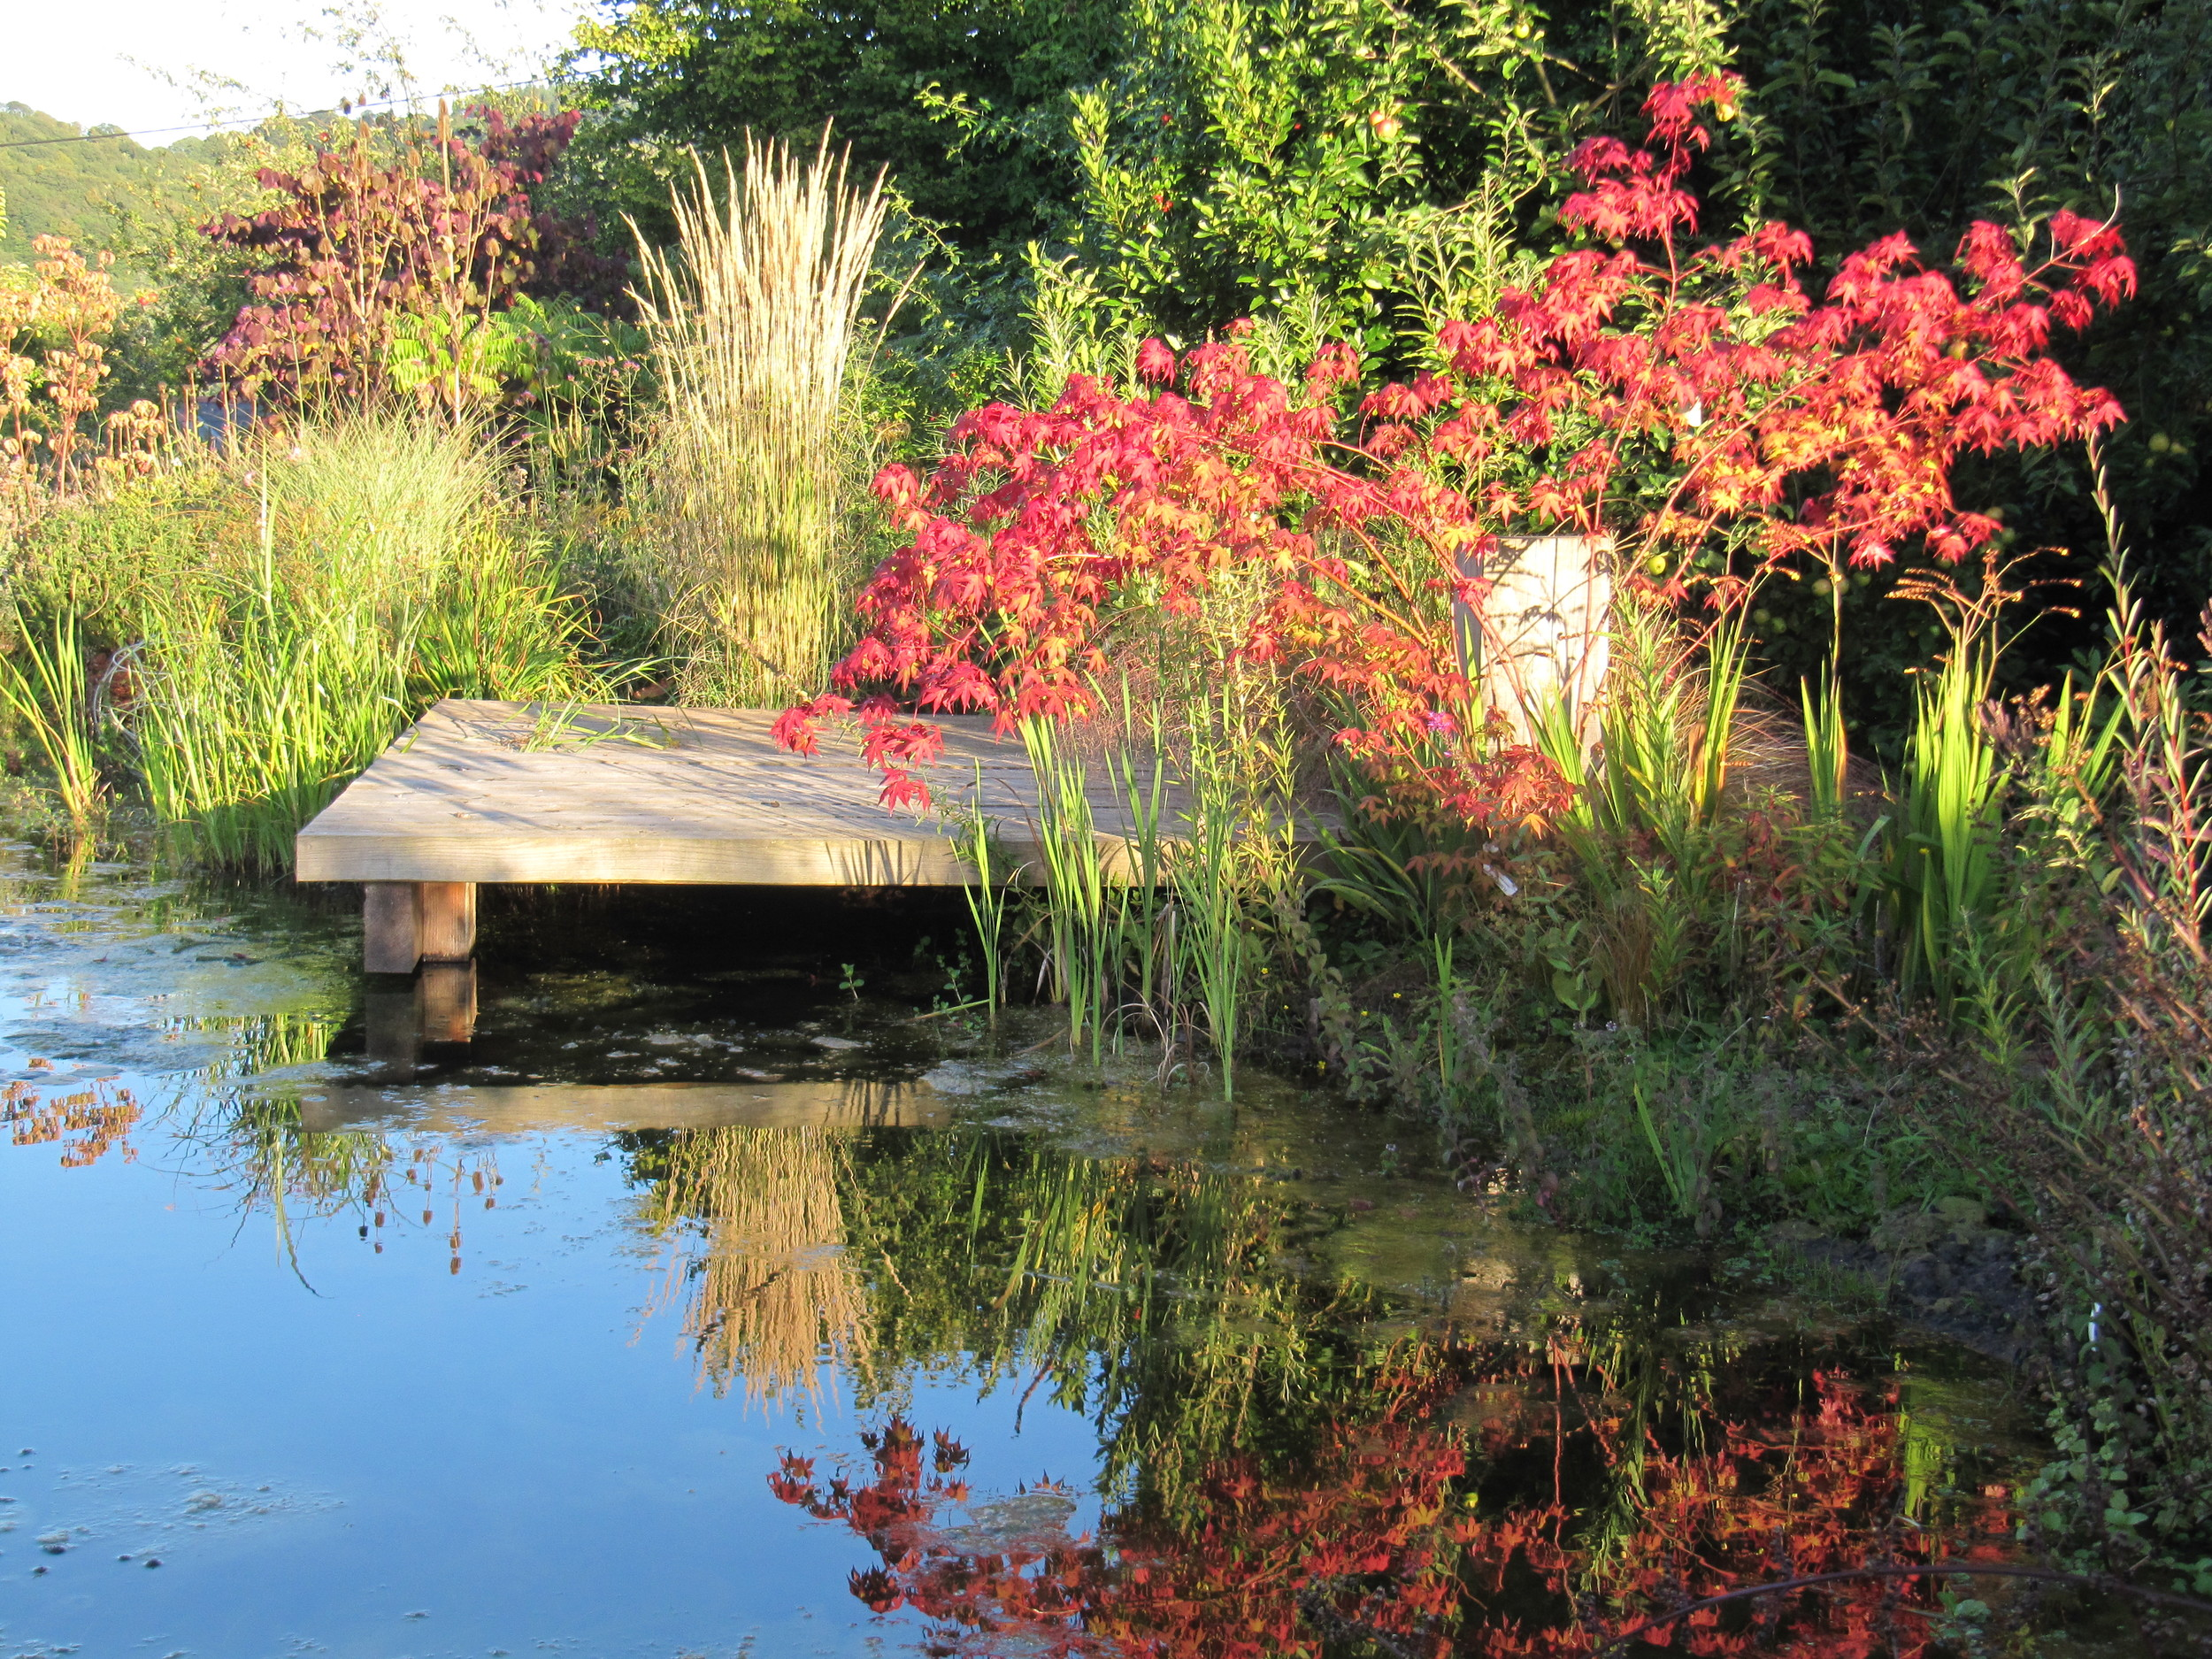 Acer palmatum, its fiery red autumn foliage reflected with the clear blue sky of a sunny October day